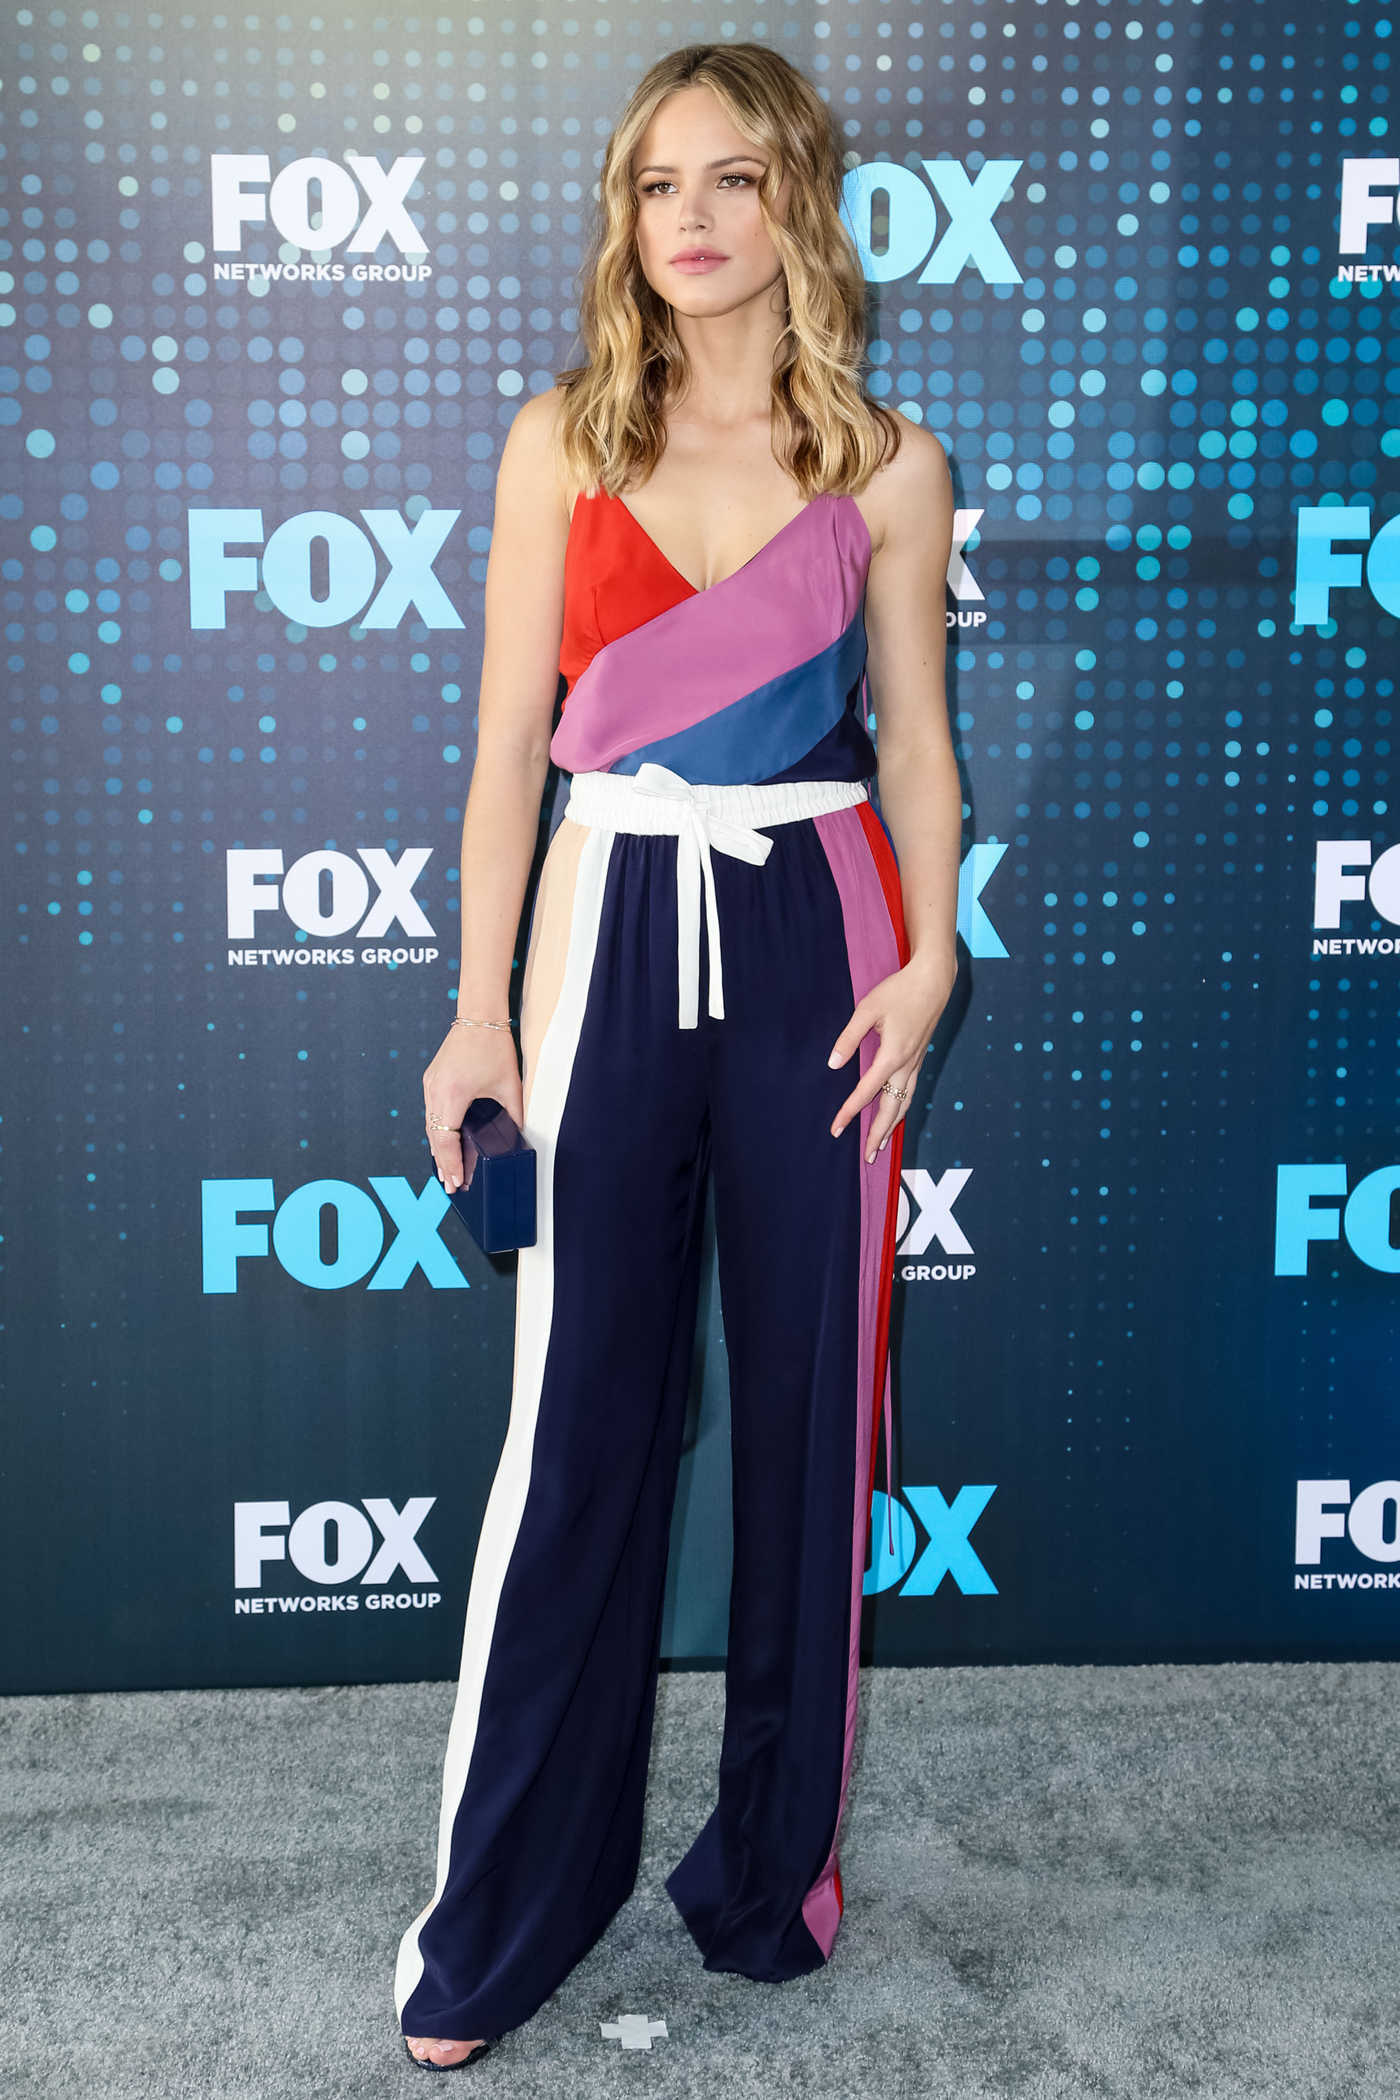 Halston Sage at the Fox Upfront Presentation in NYC 05/15/2017